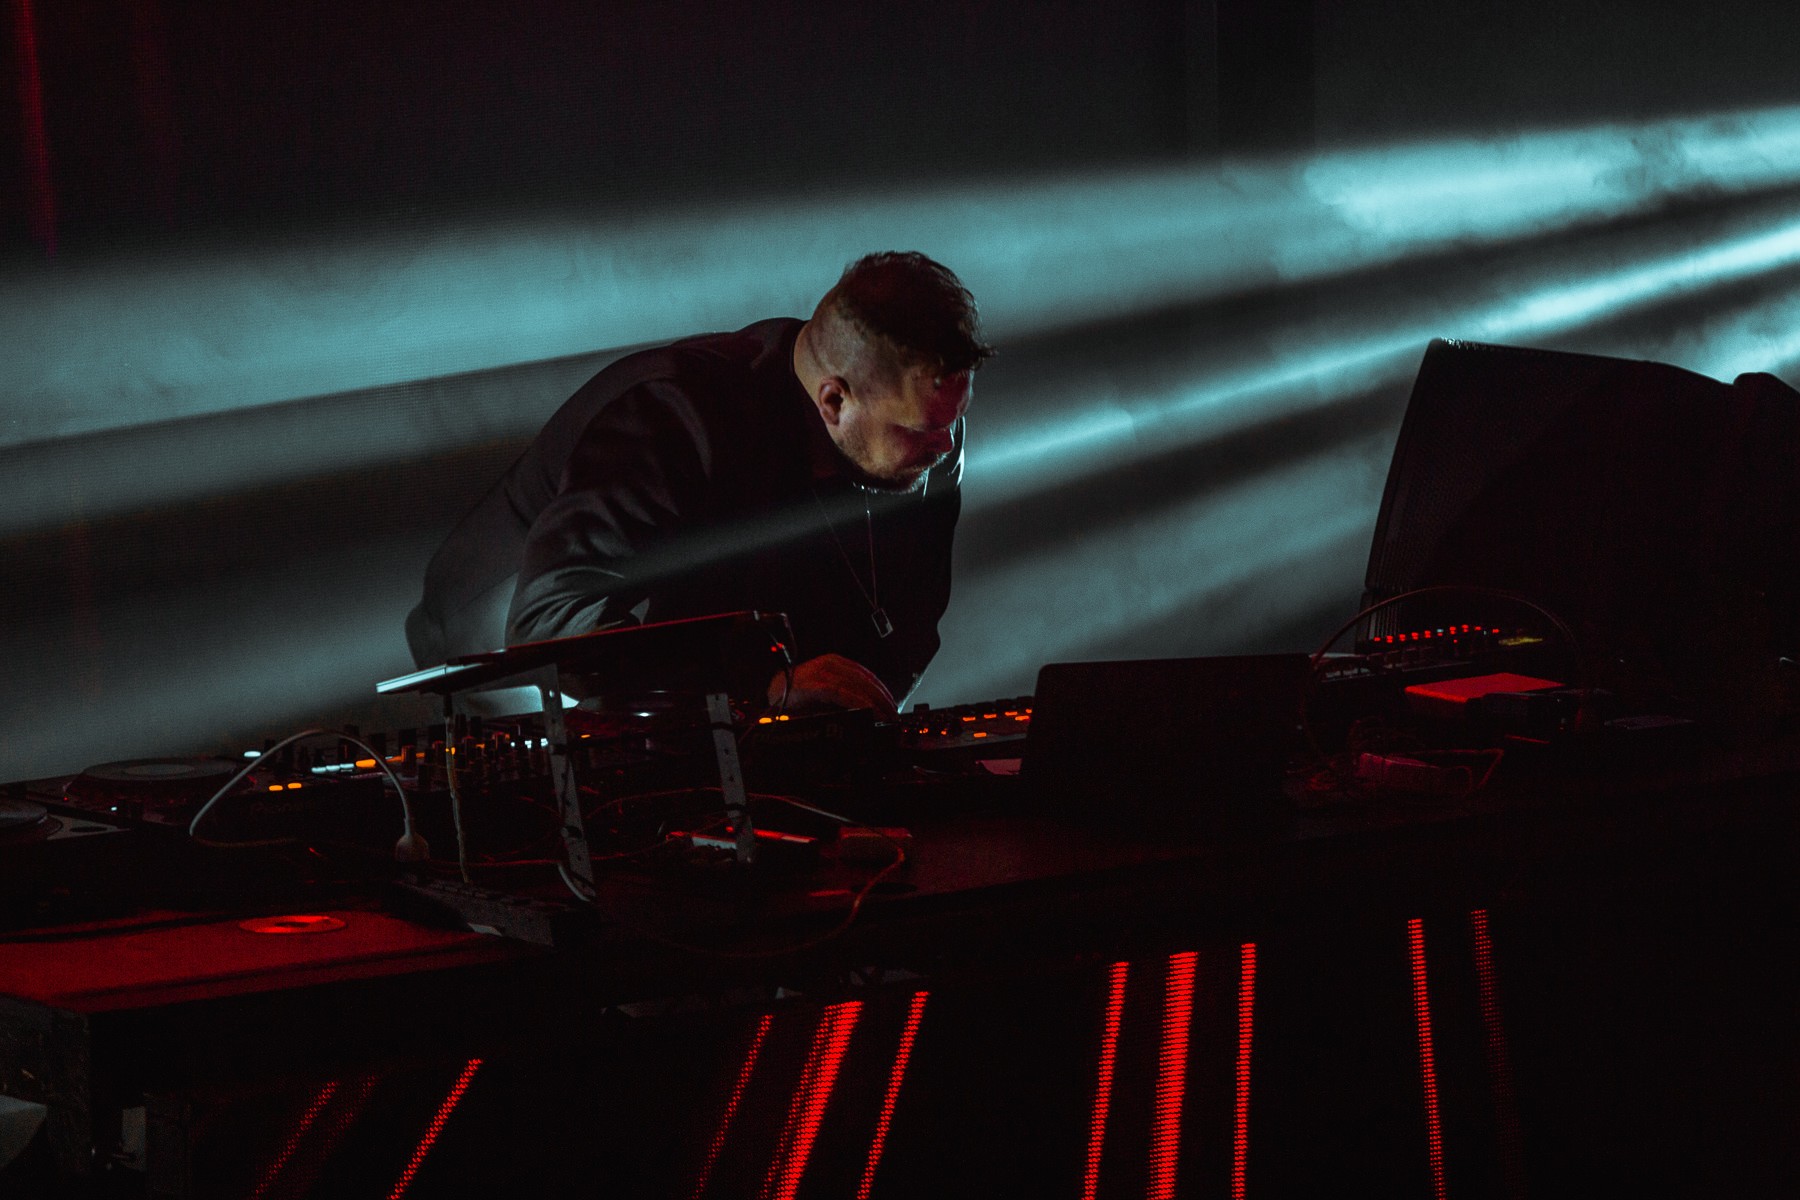 180318-kirby-gladstein-photograpy-com-truise-concert-exchange-LA-los-angeles-1088.jpg